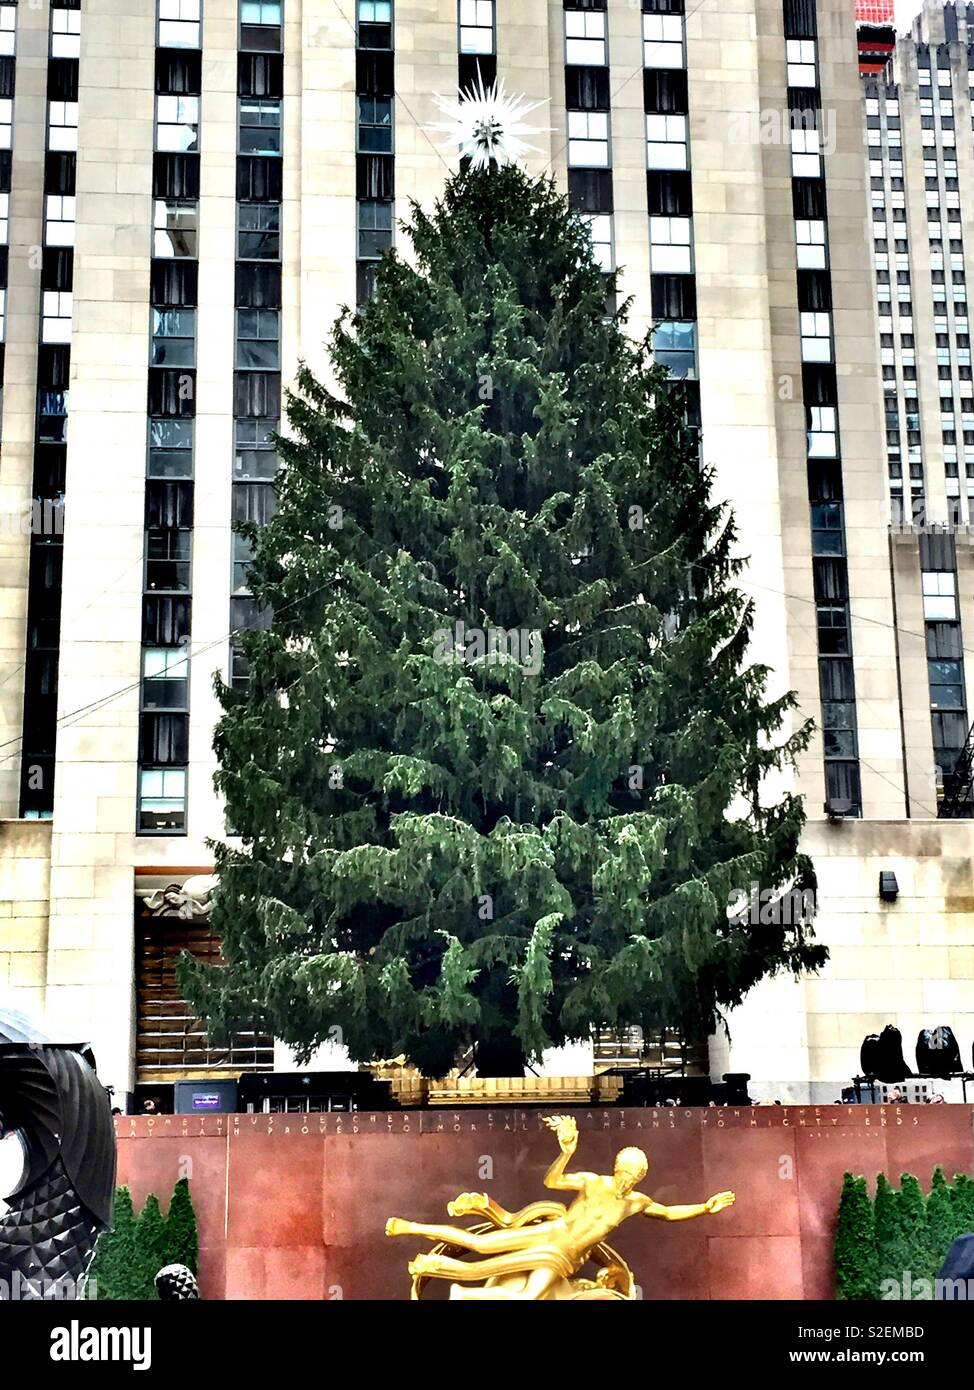 The giant Christmas tree at Rockefeller Center awaits its traditional lighting ceremony, 5th Ave., New York City, United States - Stock Image